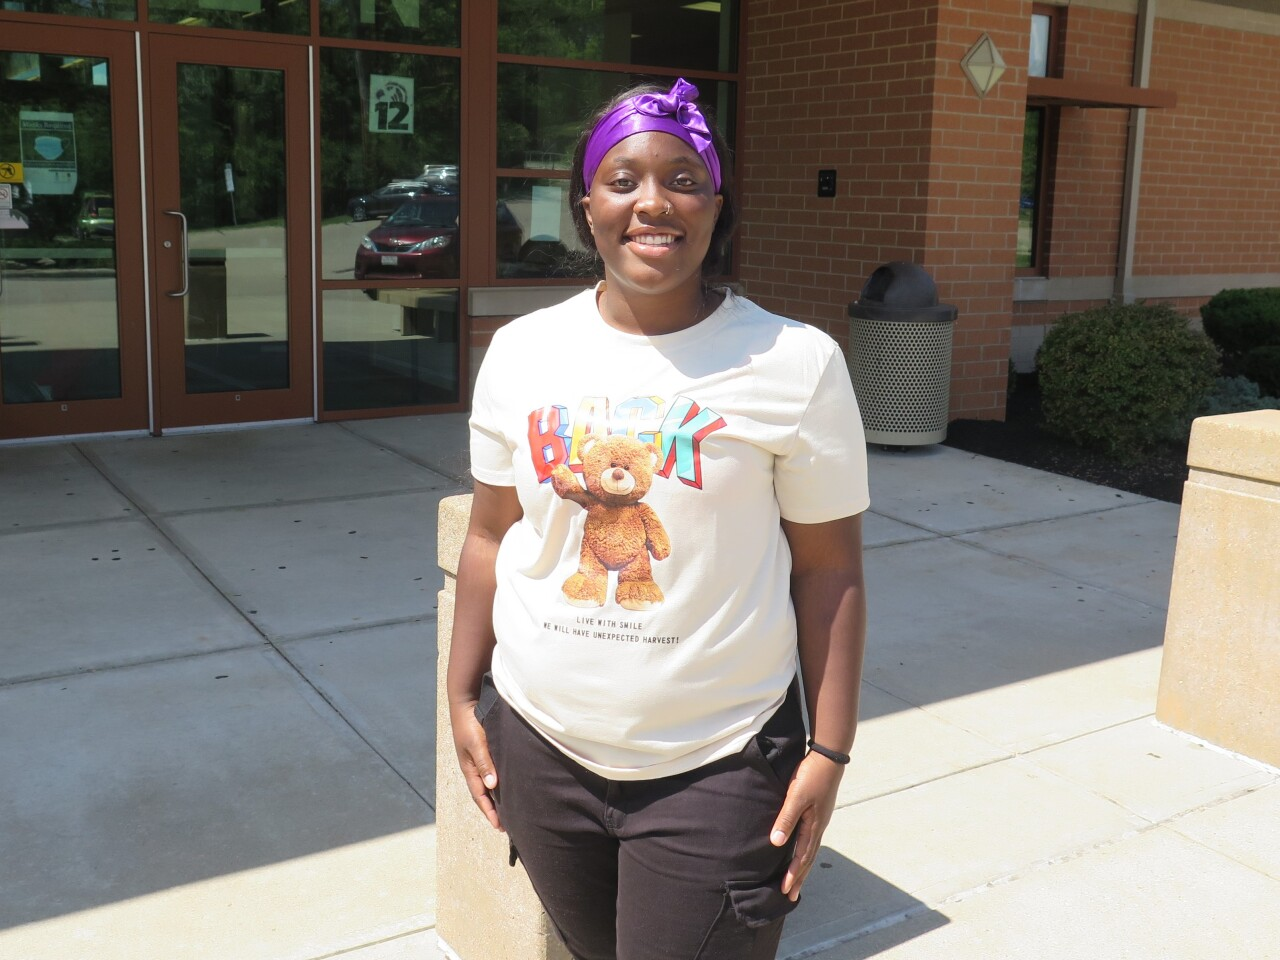 Teri'Ana Joyner smiles for a picture outside Aiken High School. Teri'Ana's long hair is pulled back by a purple scarf, and she's wearing a cream-colored t-shirt with a picture of a teddy bear on it.